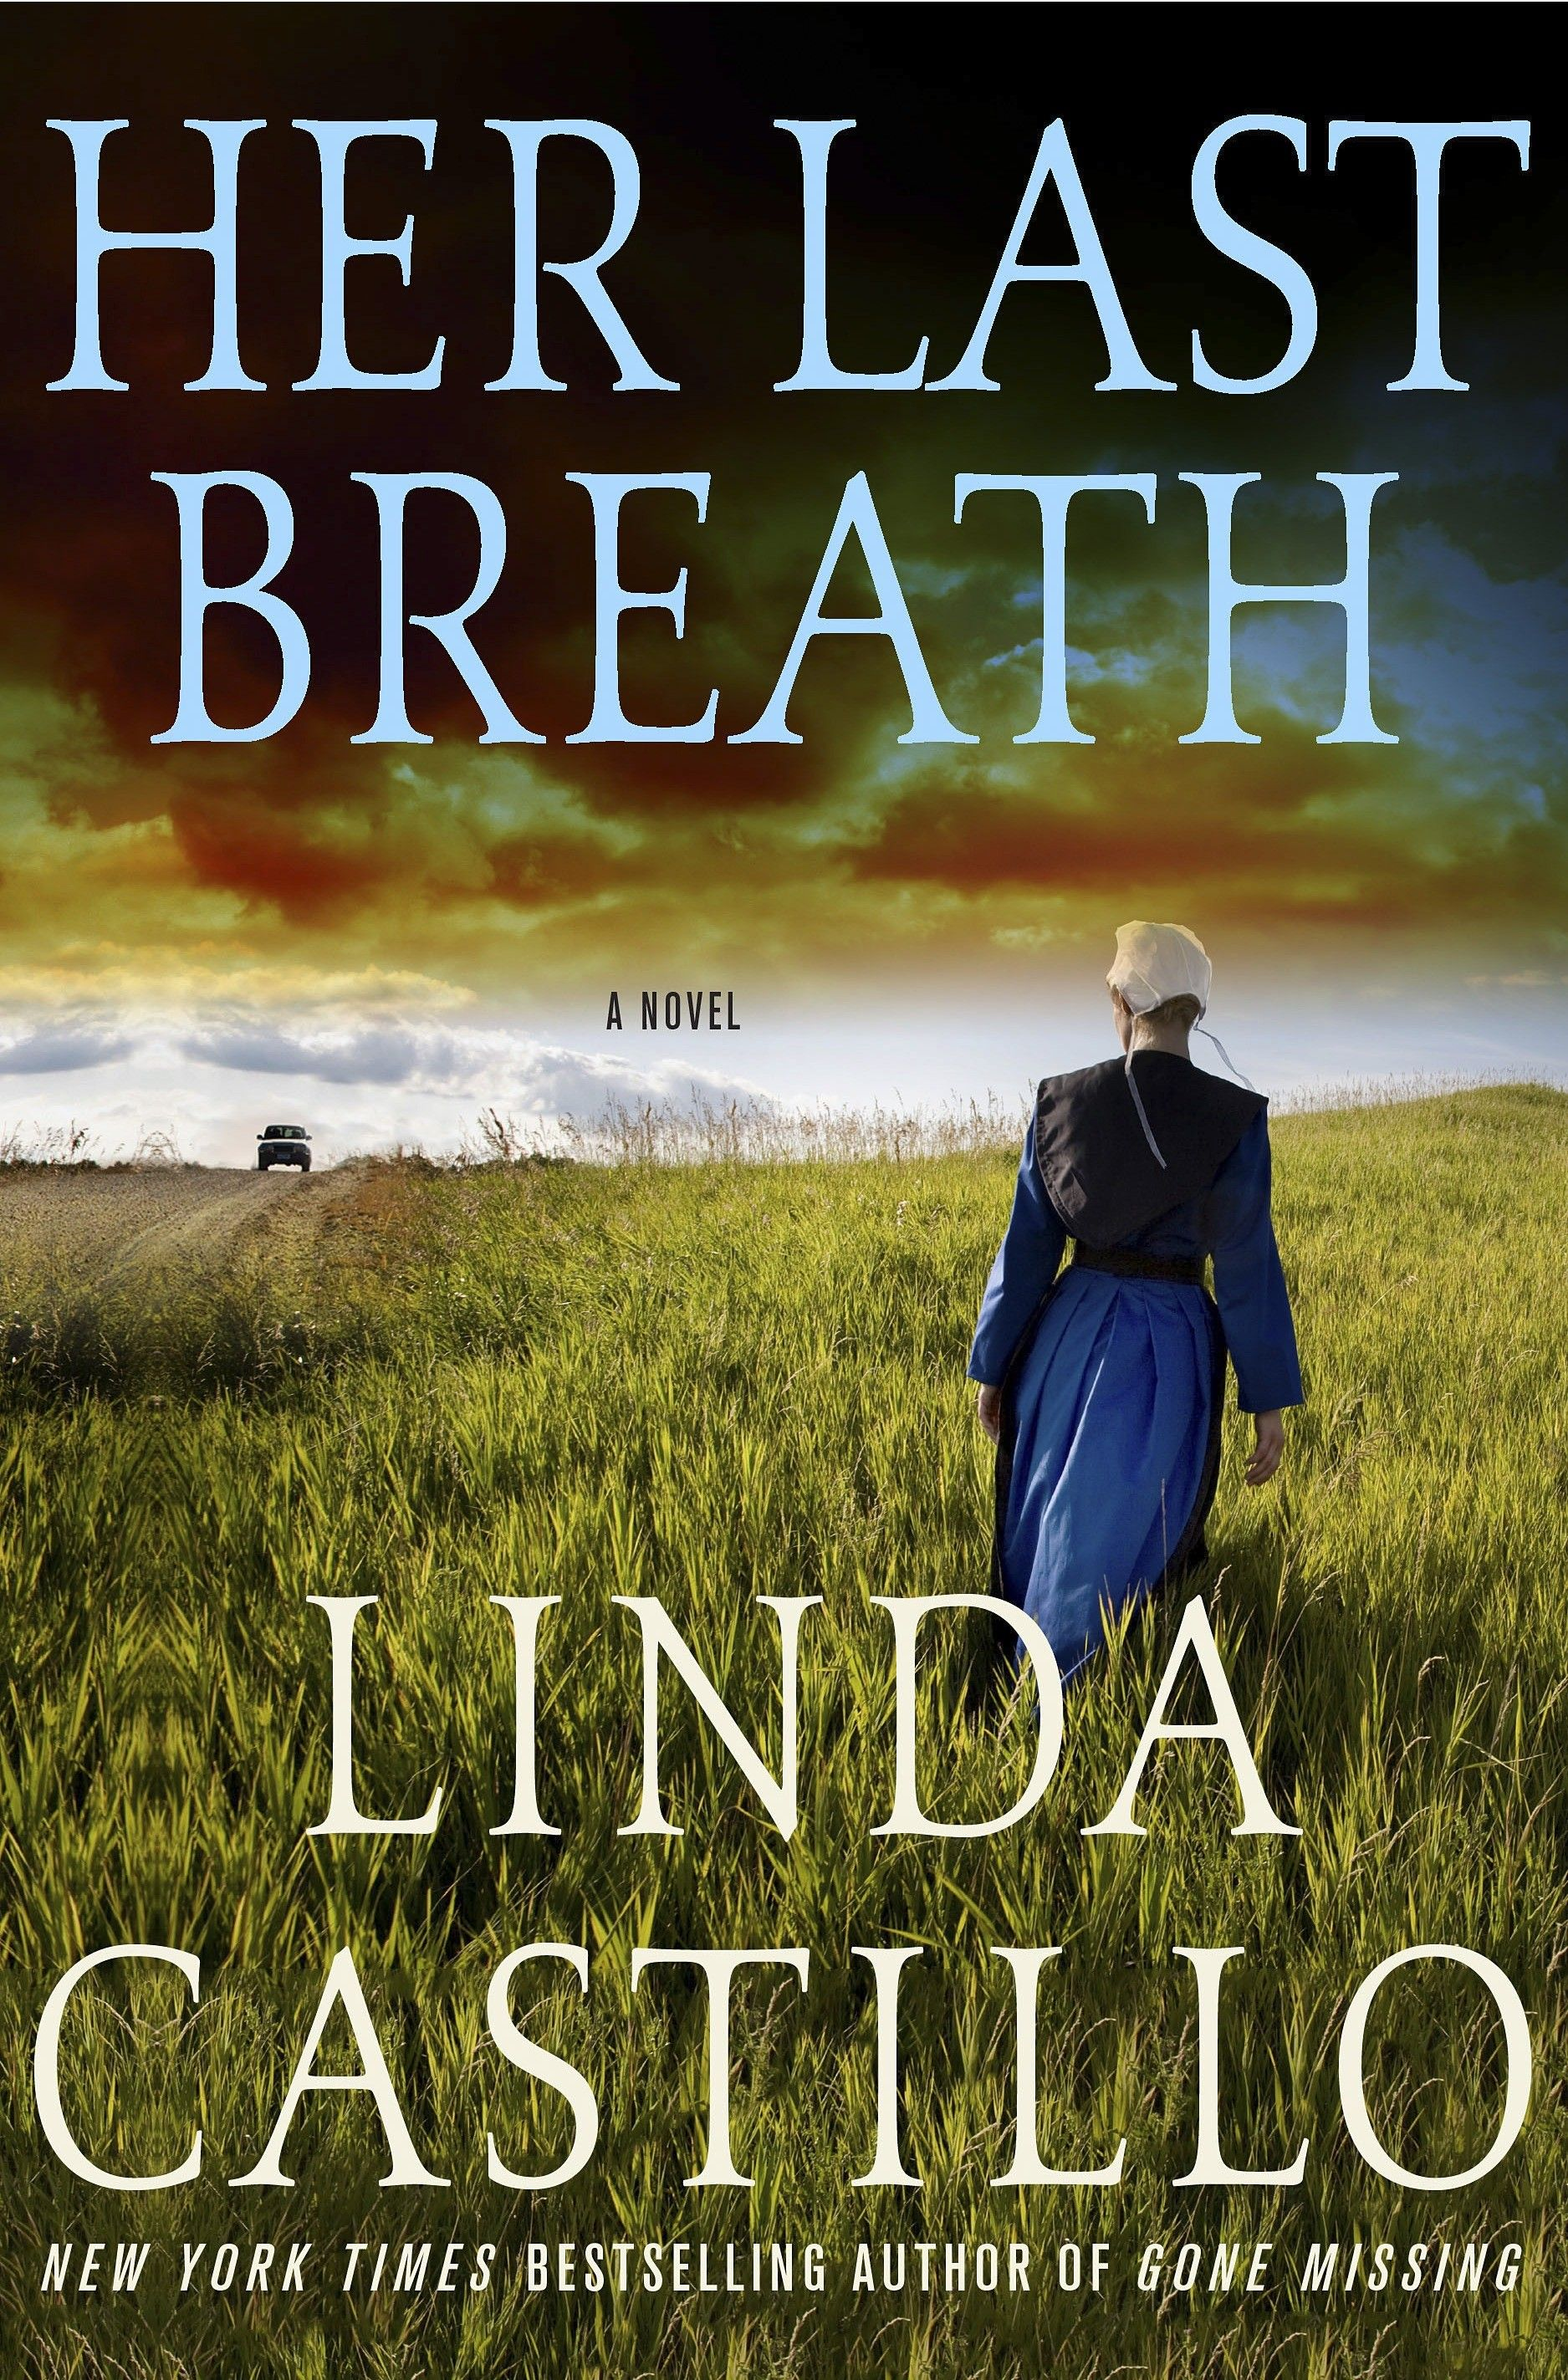 Her Last Breath - Linda Castillo's searing Her Last Breath brings us back to Painter's Mill, Ohio, a usually placid Amish town protected by Chief of Police Kate Burkholder-herself a former member of the town's Amish community.At first it seems like a heartbreakingly tragic hit-and-run accident: Amish farmer Paul Borntrager's horse-drawn buggy is hit by a truck, killing Borntrager and two of his three children. But as Kate Burkholder scrutinizes the evidence, she becomes convinced that the…